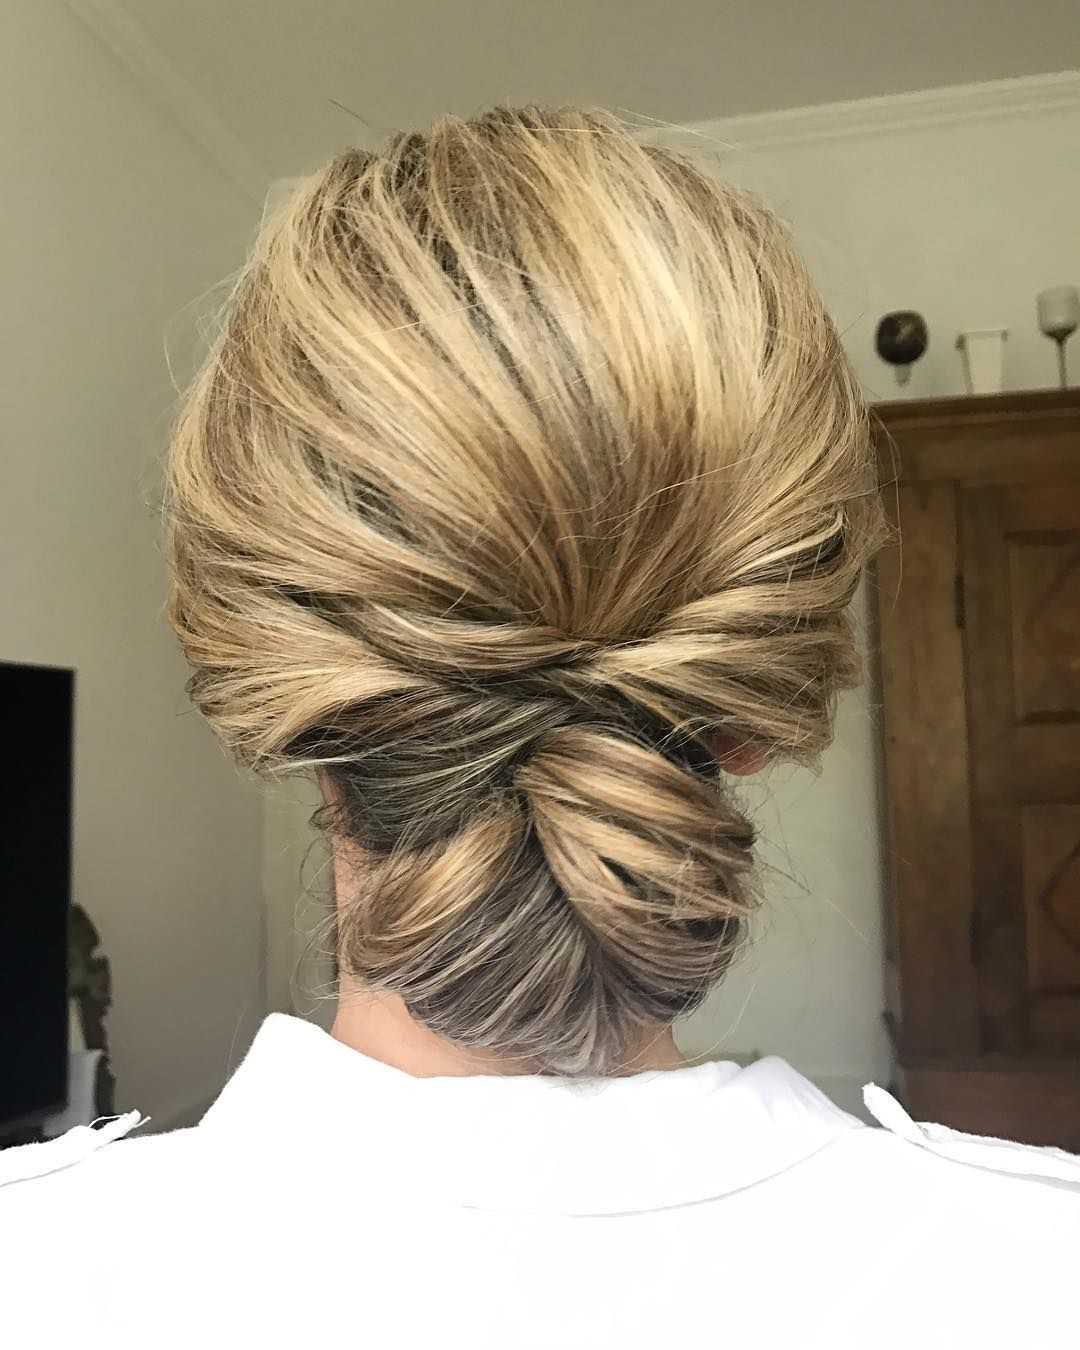 chignon ,messy updo hairstyle ,swept back bridal hairstyle ,updo hairstyles ,wedding hairstyles #weddinghair #hairstyles #updo